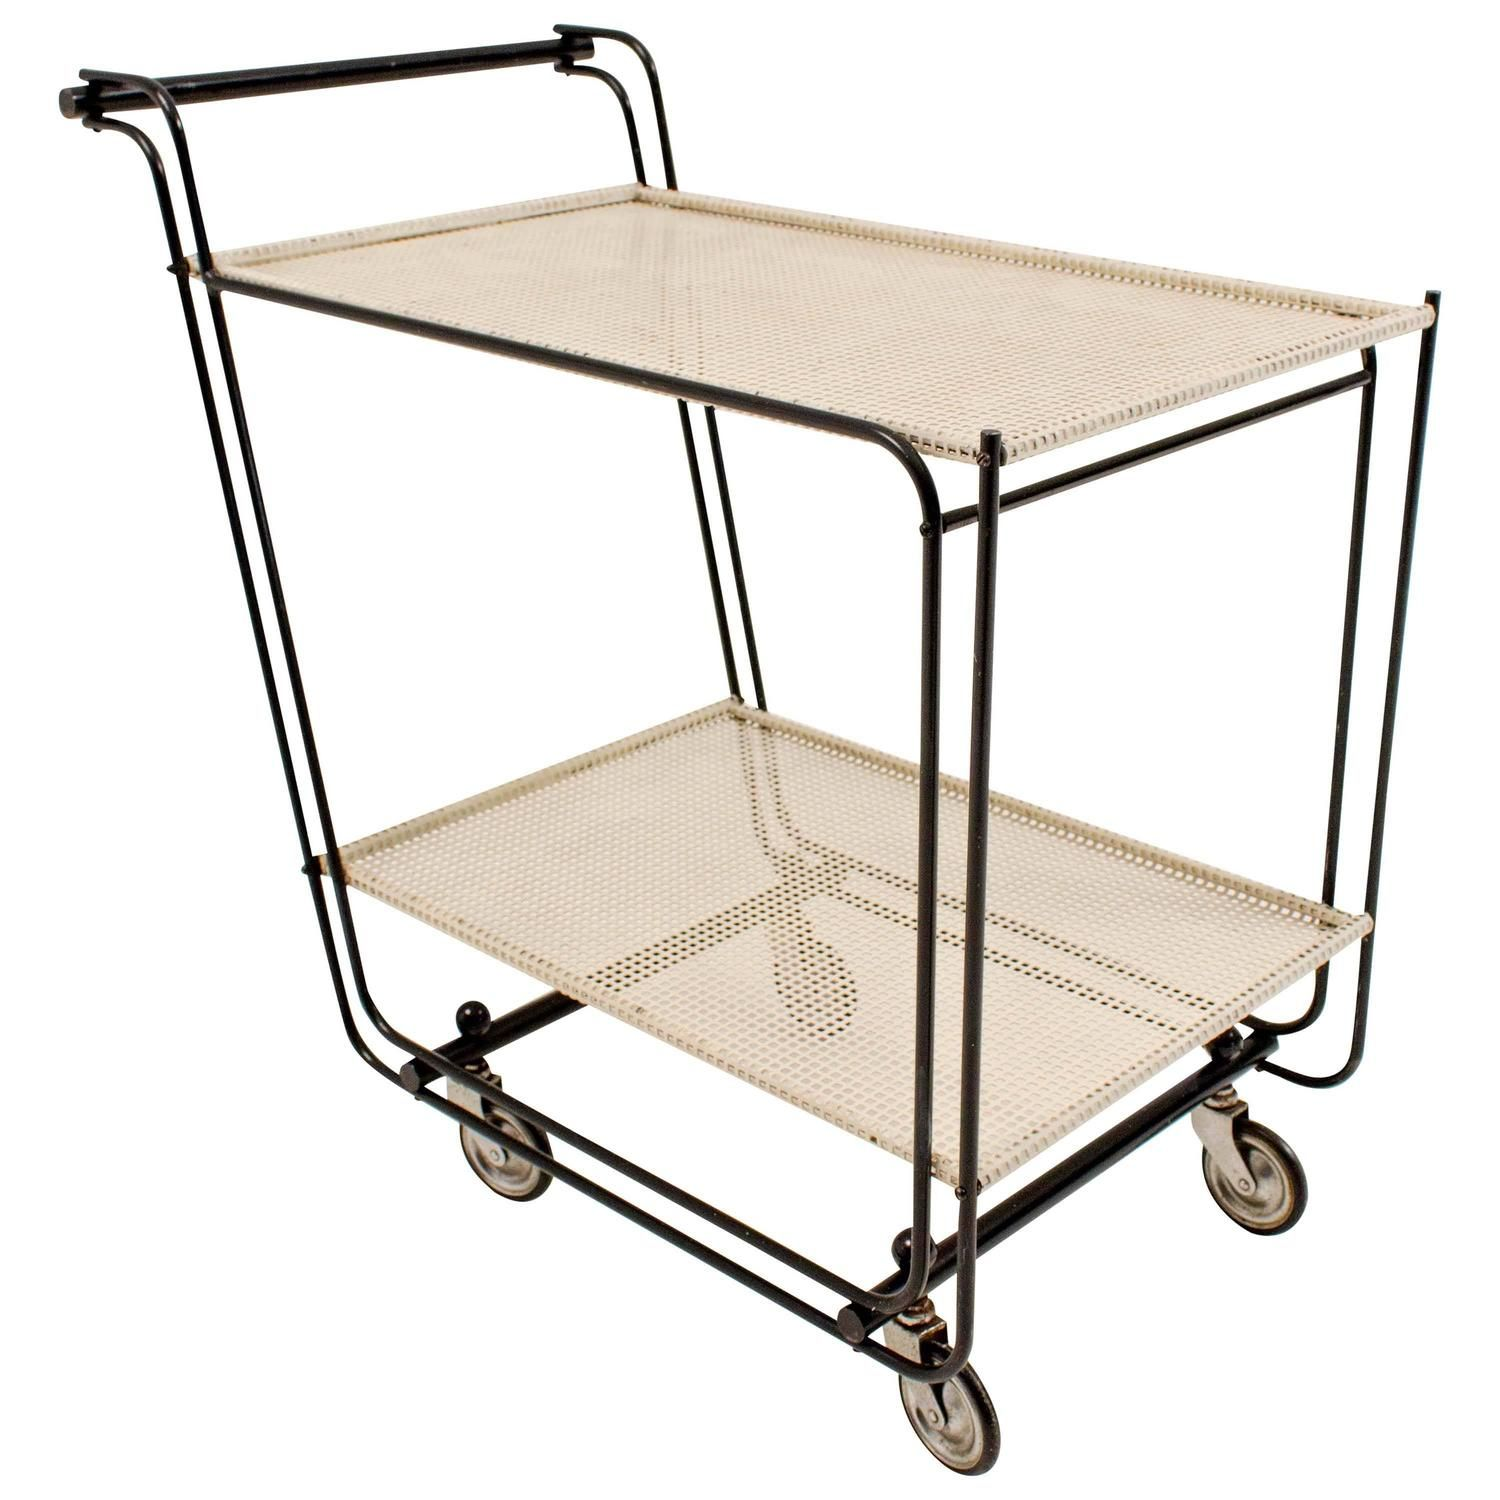 stylish mid century modern bar cart or tea trolley in the style of mategot in 2019 ffe side. Black Bedroom Furniture Sets. Home Design Ideas